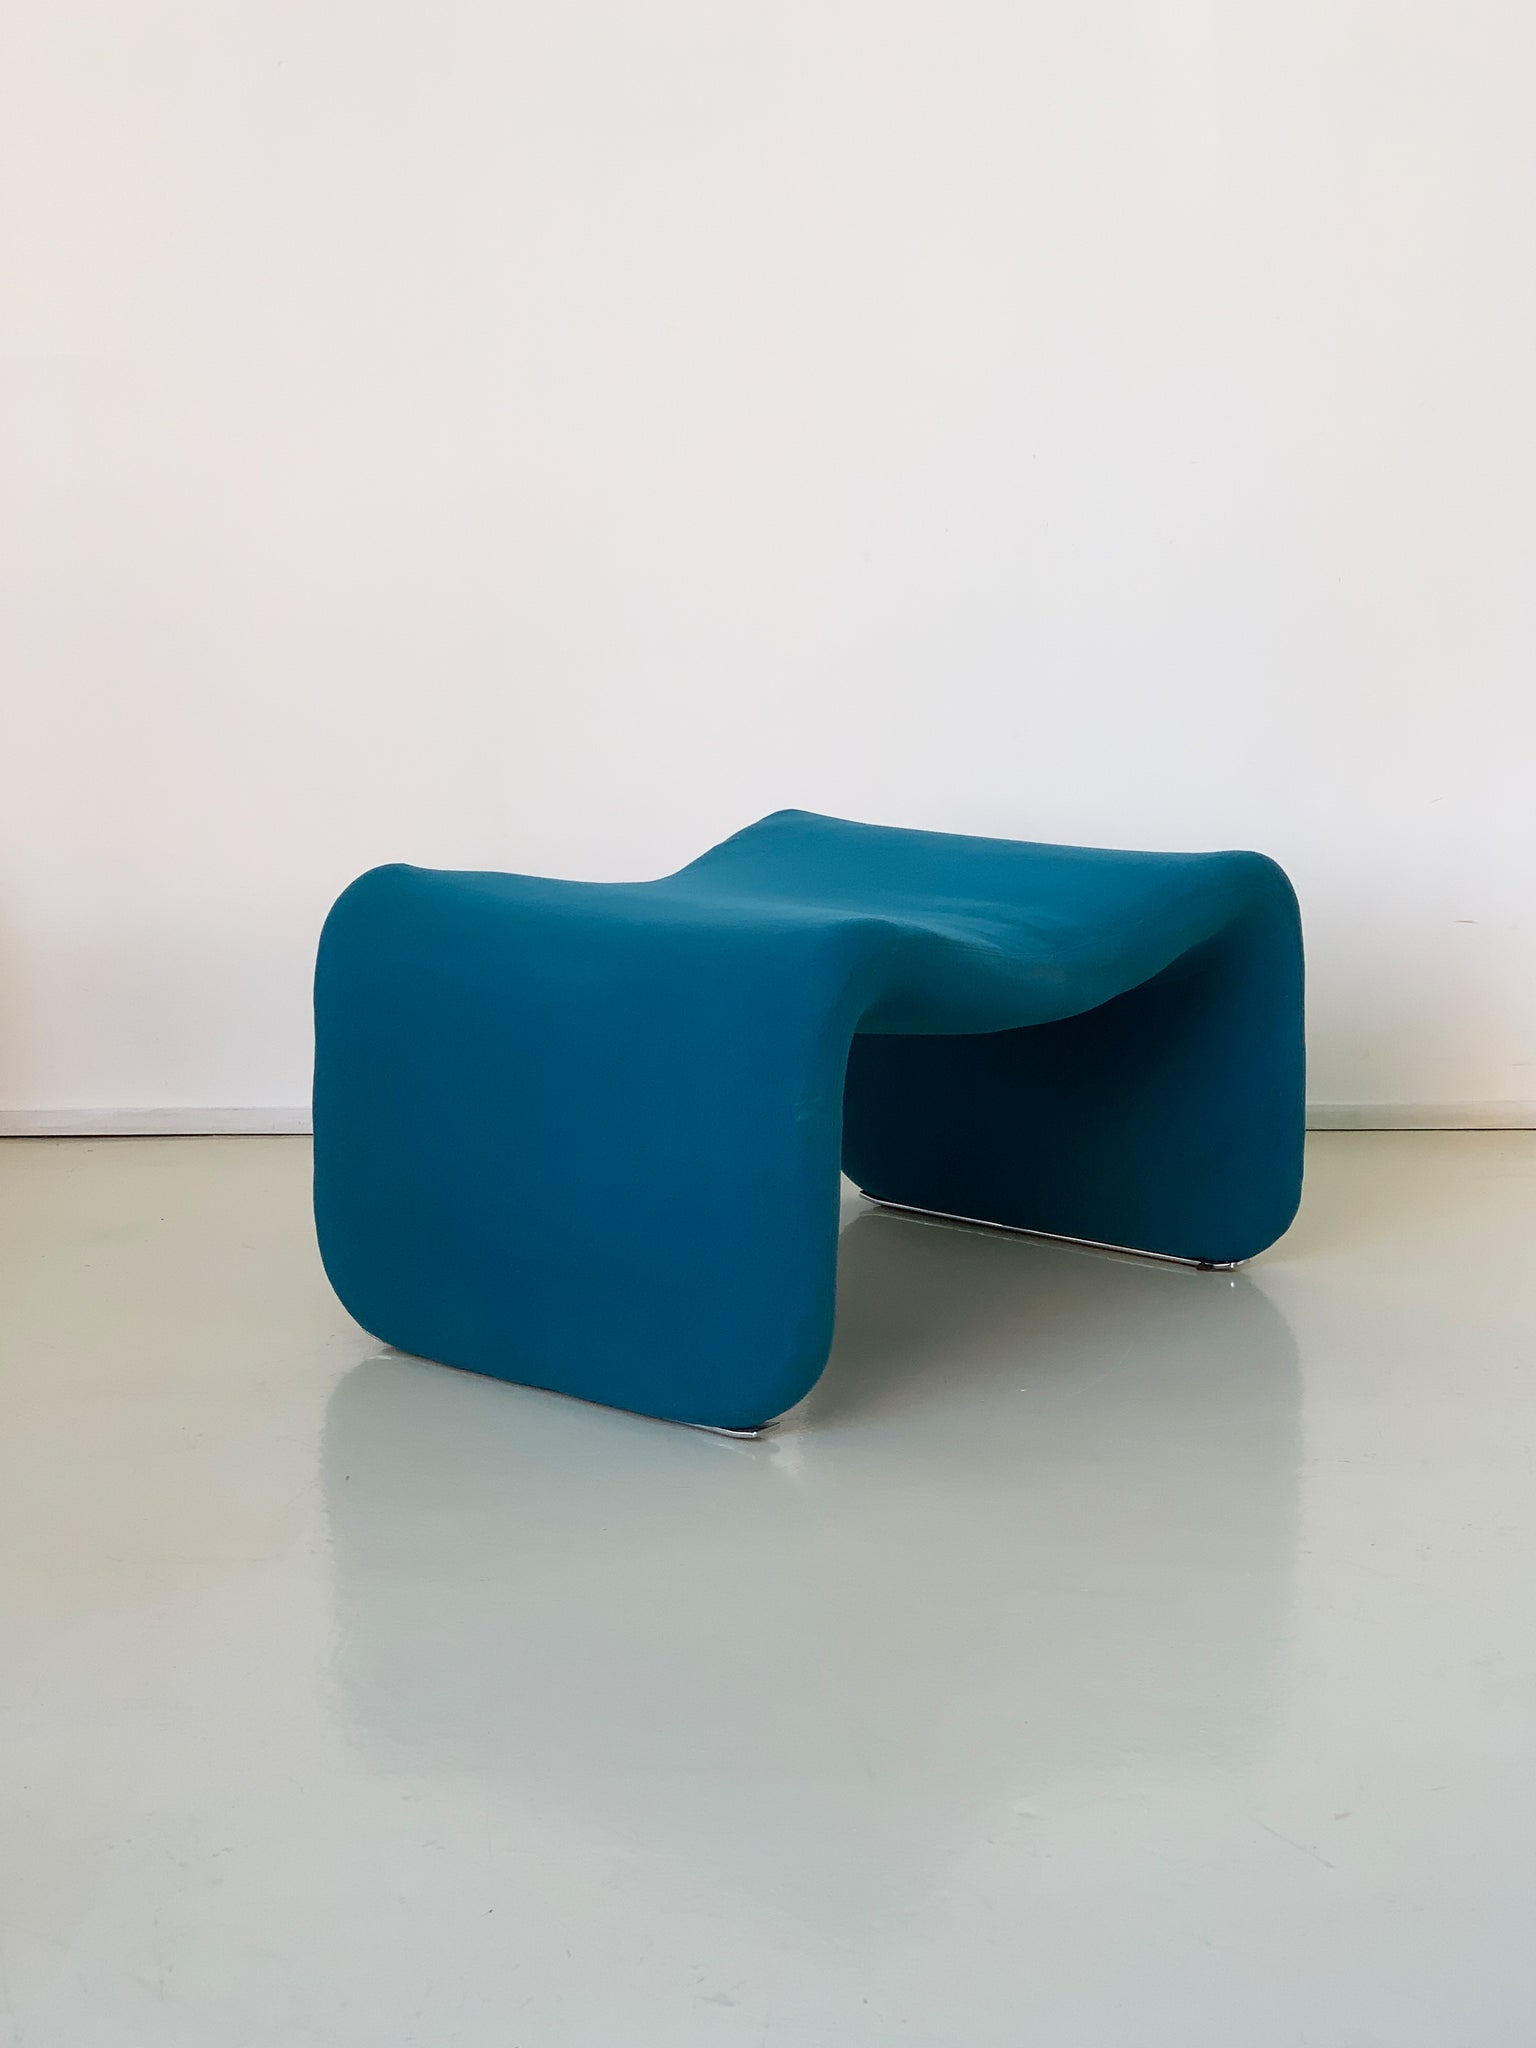 Teal 1960s Djinn Ottoman by Olivier Mourgue for Airborne